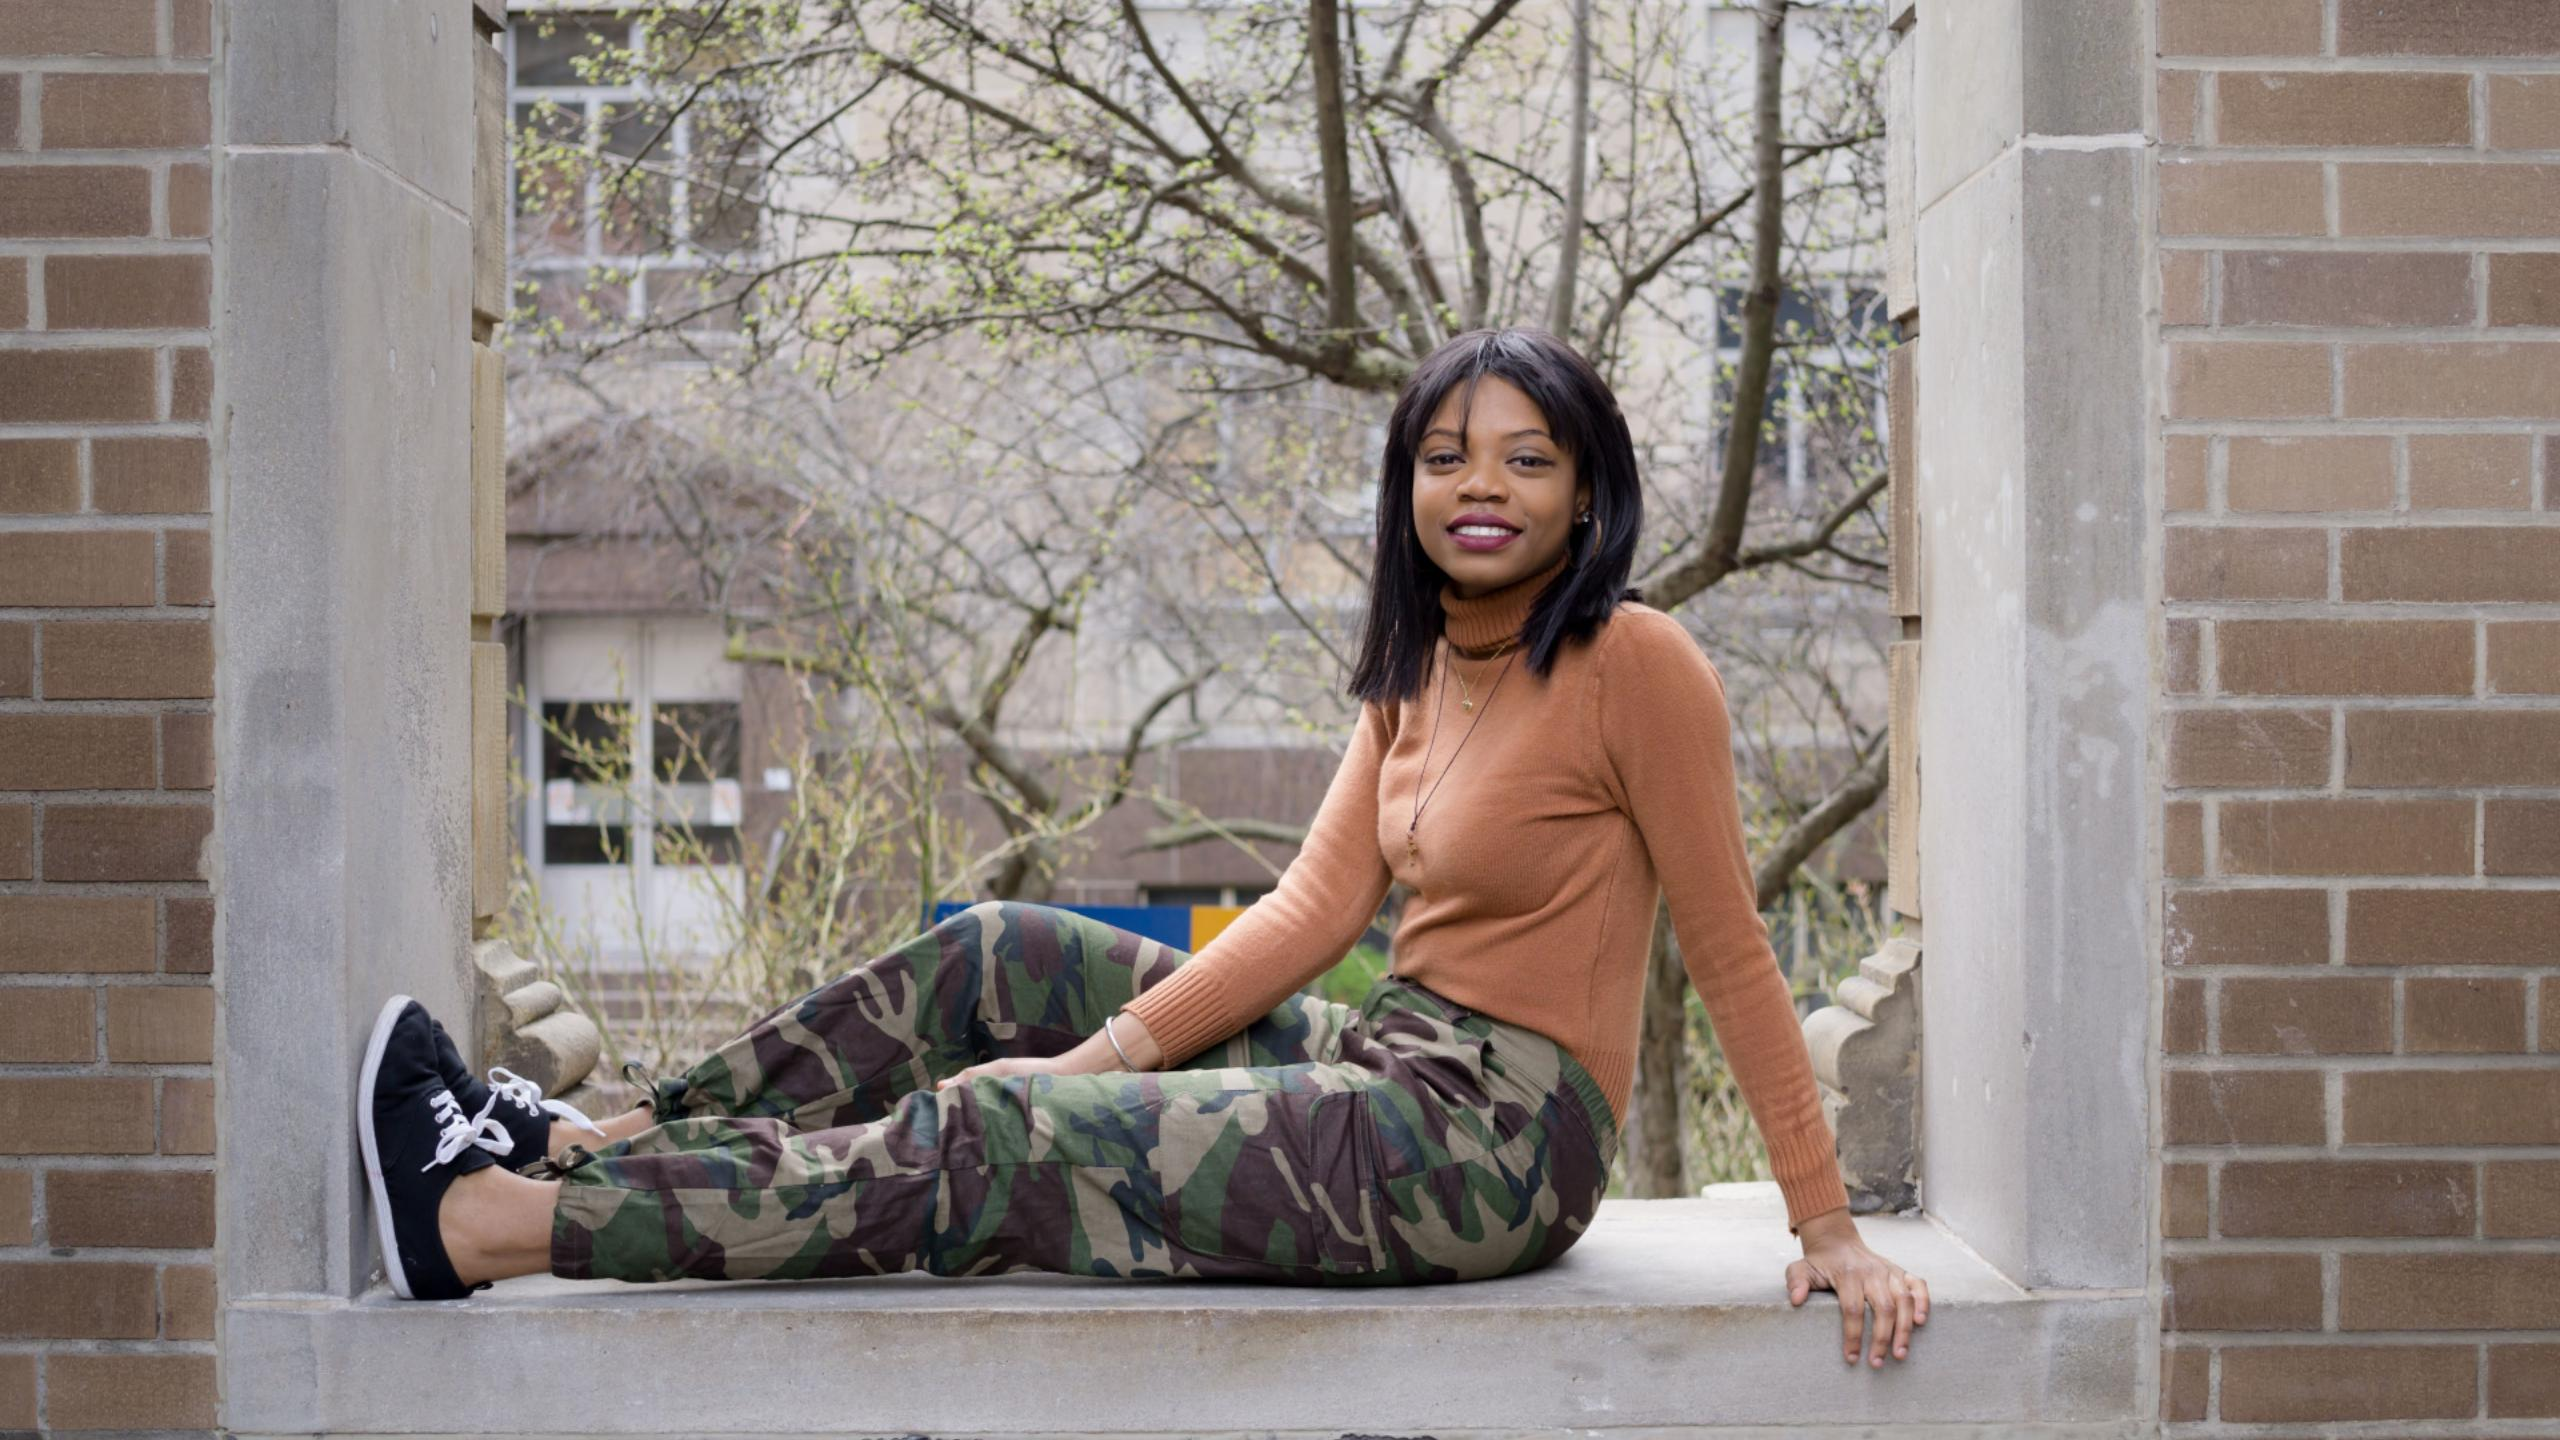 Yanique Brandford sitting on a window ledge with a brick wall around the window ledge.